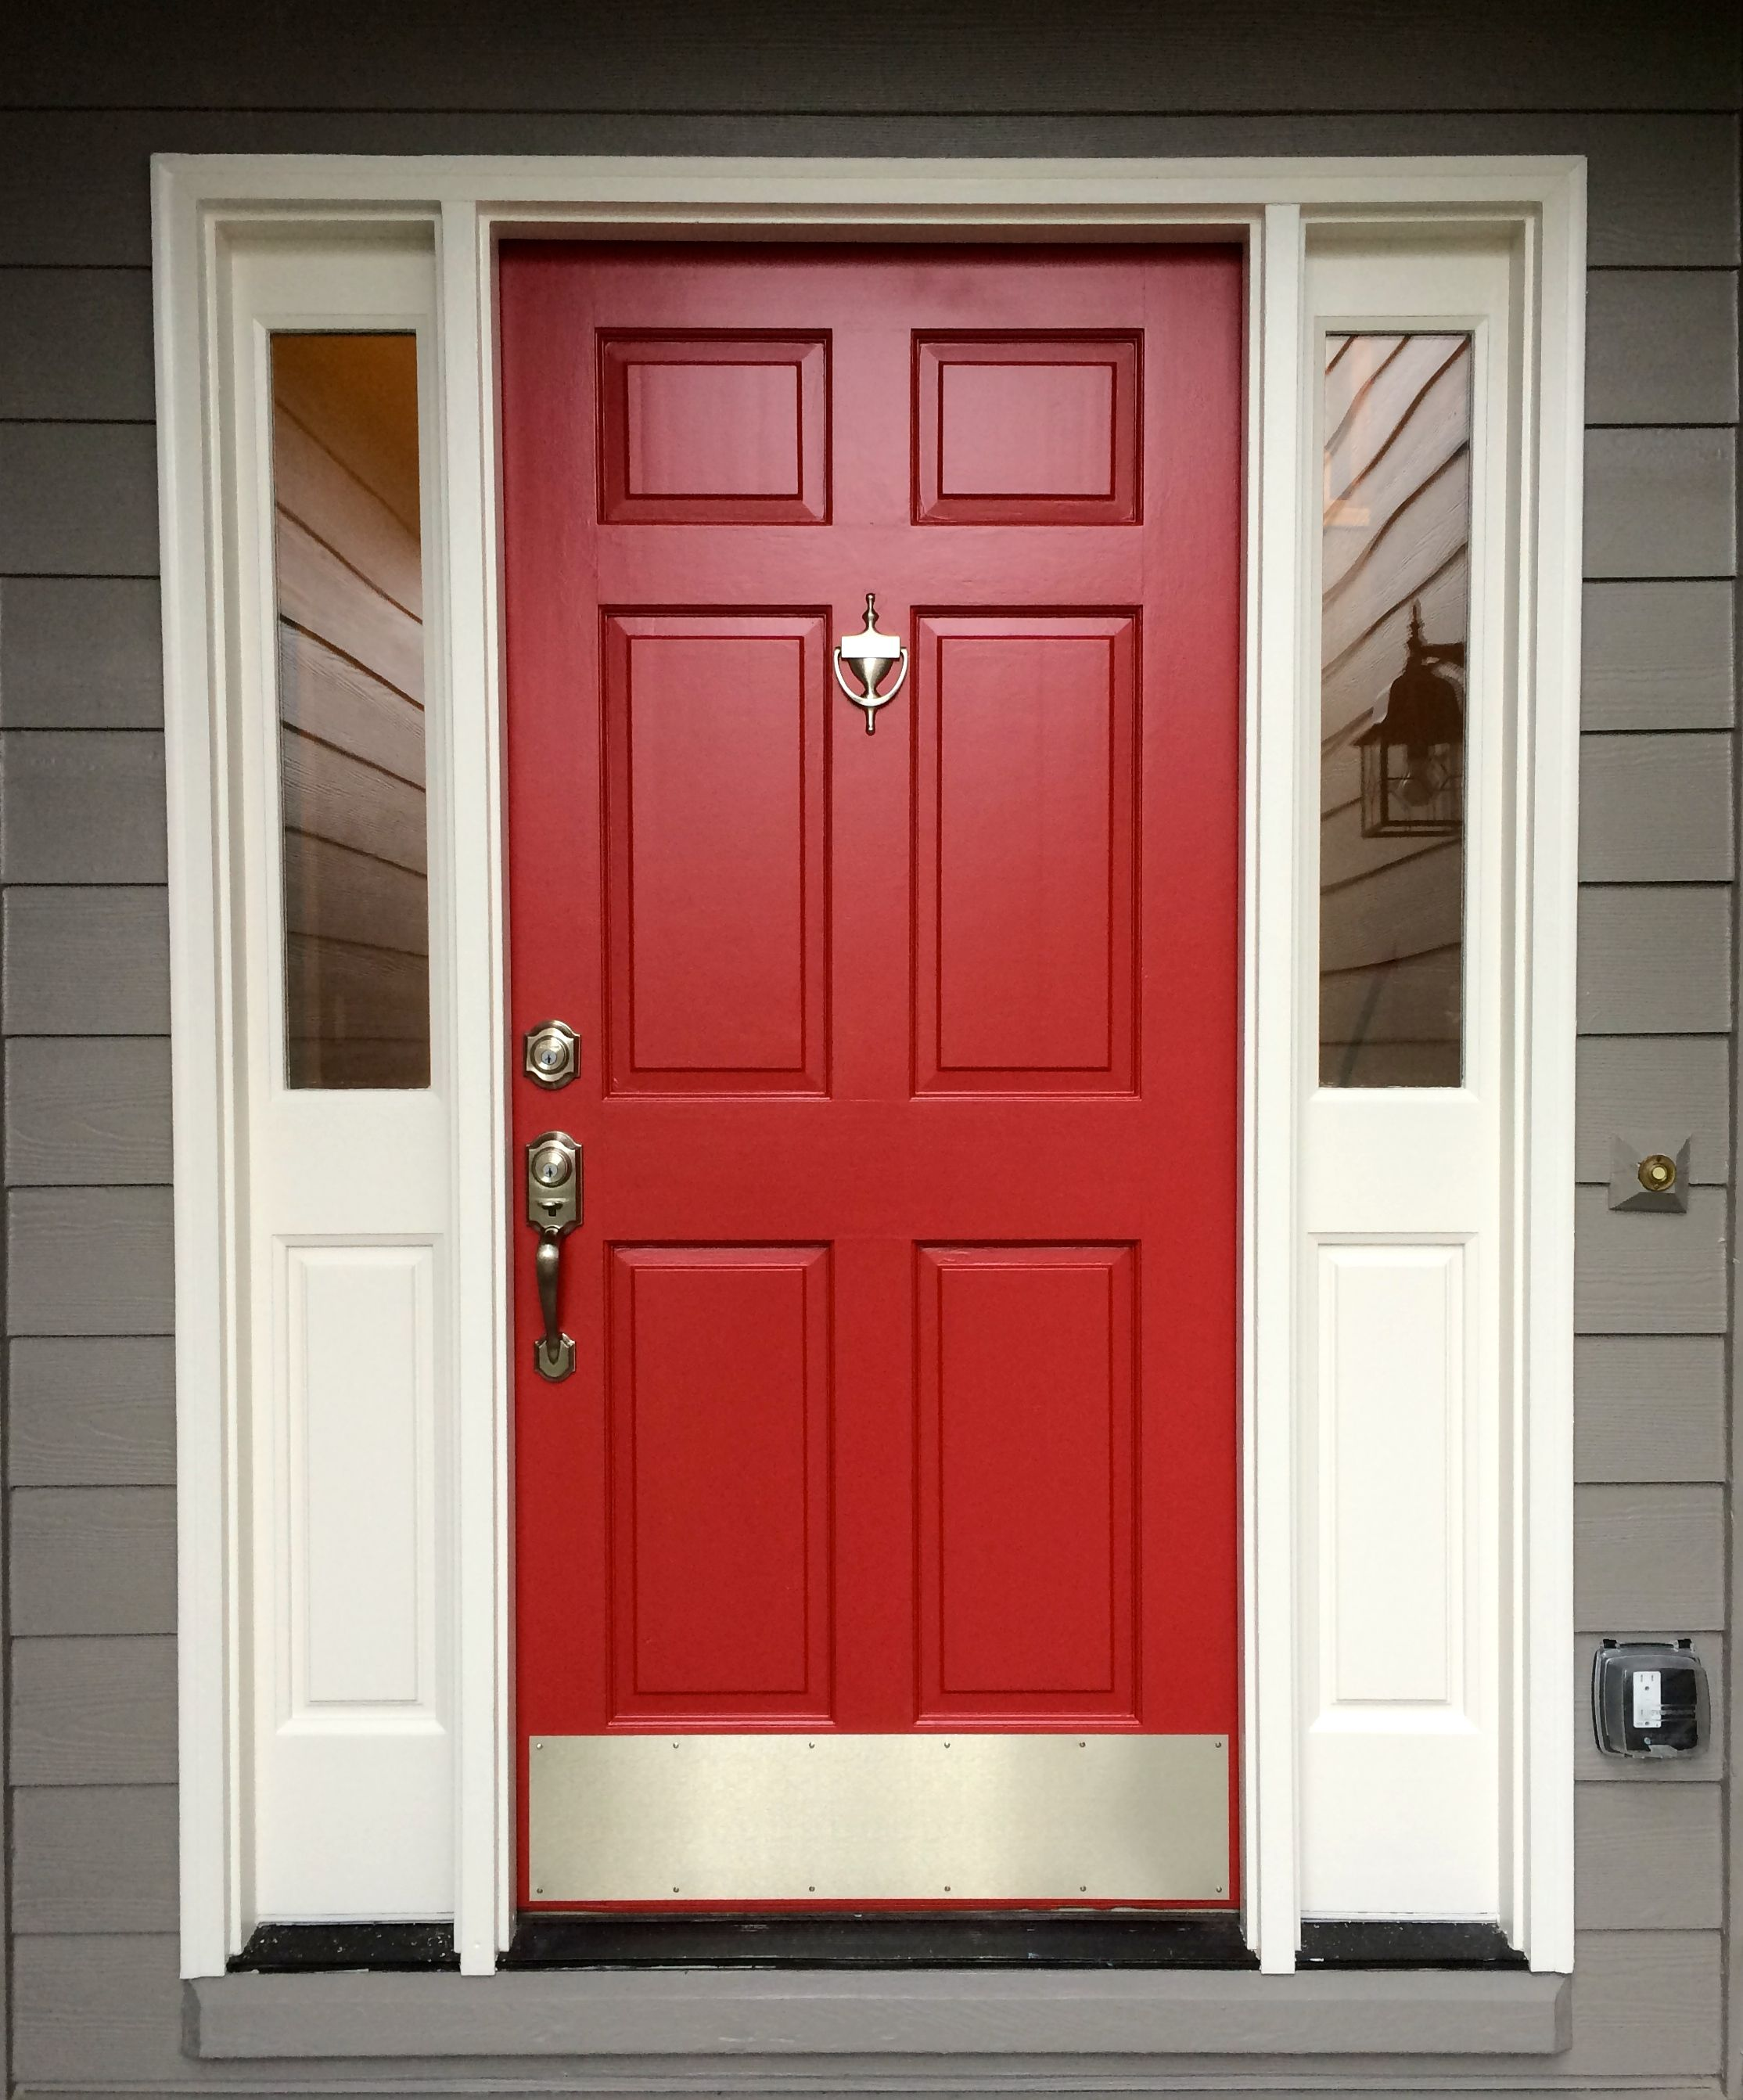 Le Meilleur Red Front Door Sherwin Williams Antique Red For The Ce Mois Ci